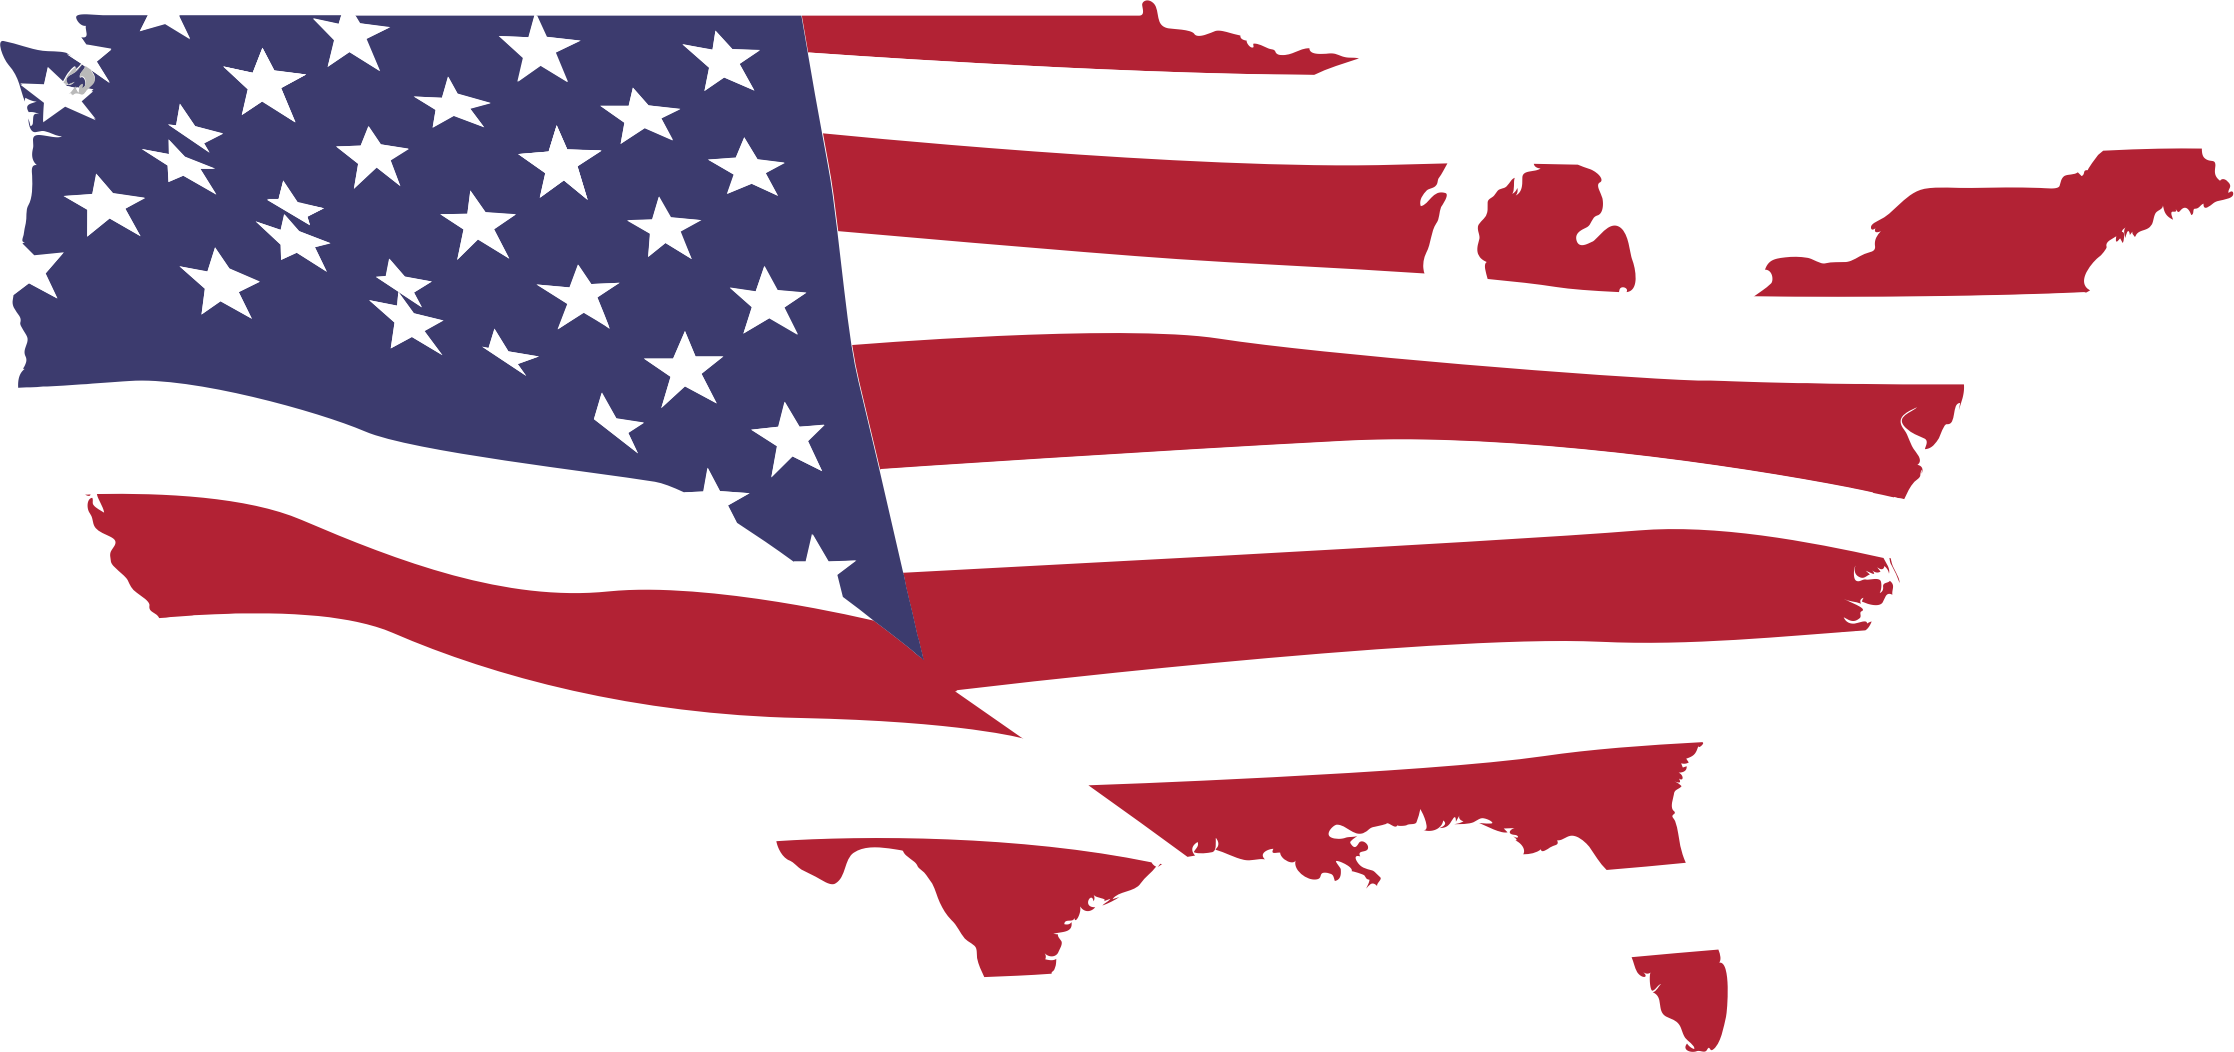 Clipart USA Map Flag Without Alaska Puerto Rico And Hawaii - Hawaii map usa states